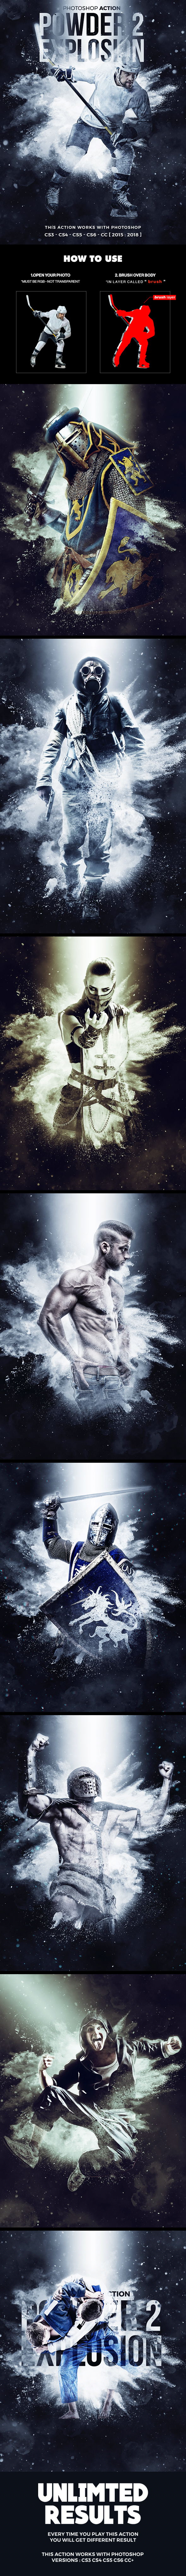 Powder Explosion 2 Photoshop Action - Photo Effects Actions